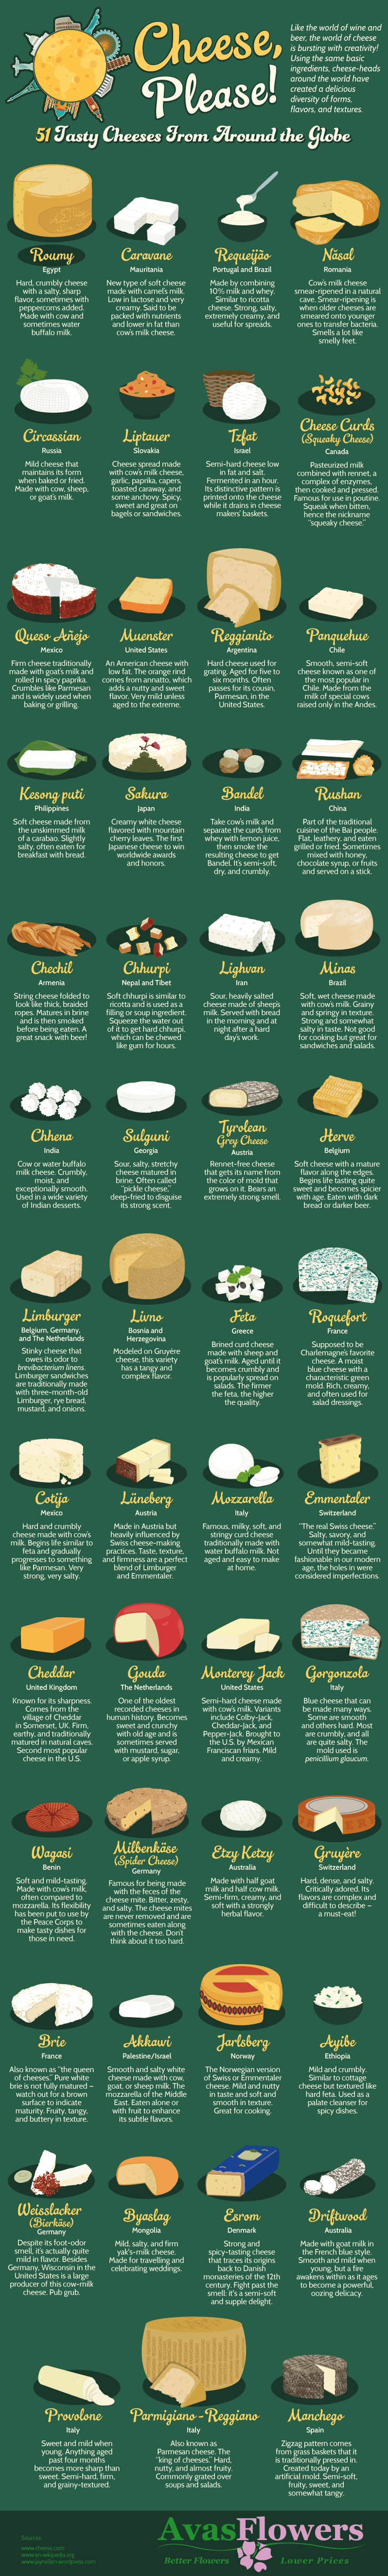 51 Types of Cheese